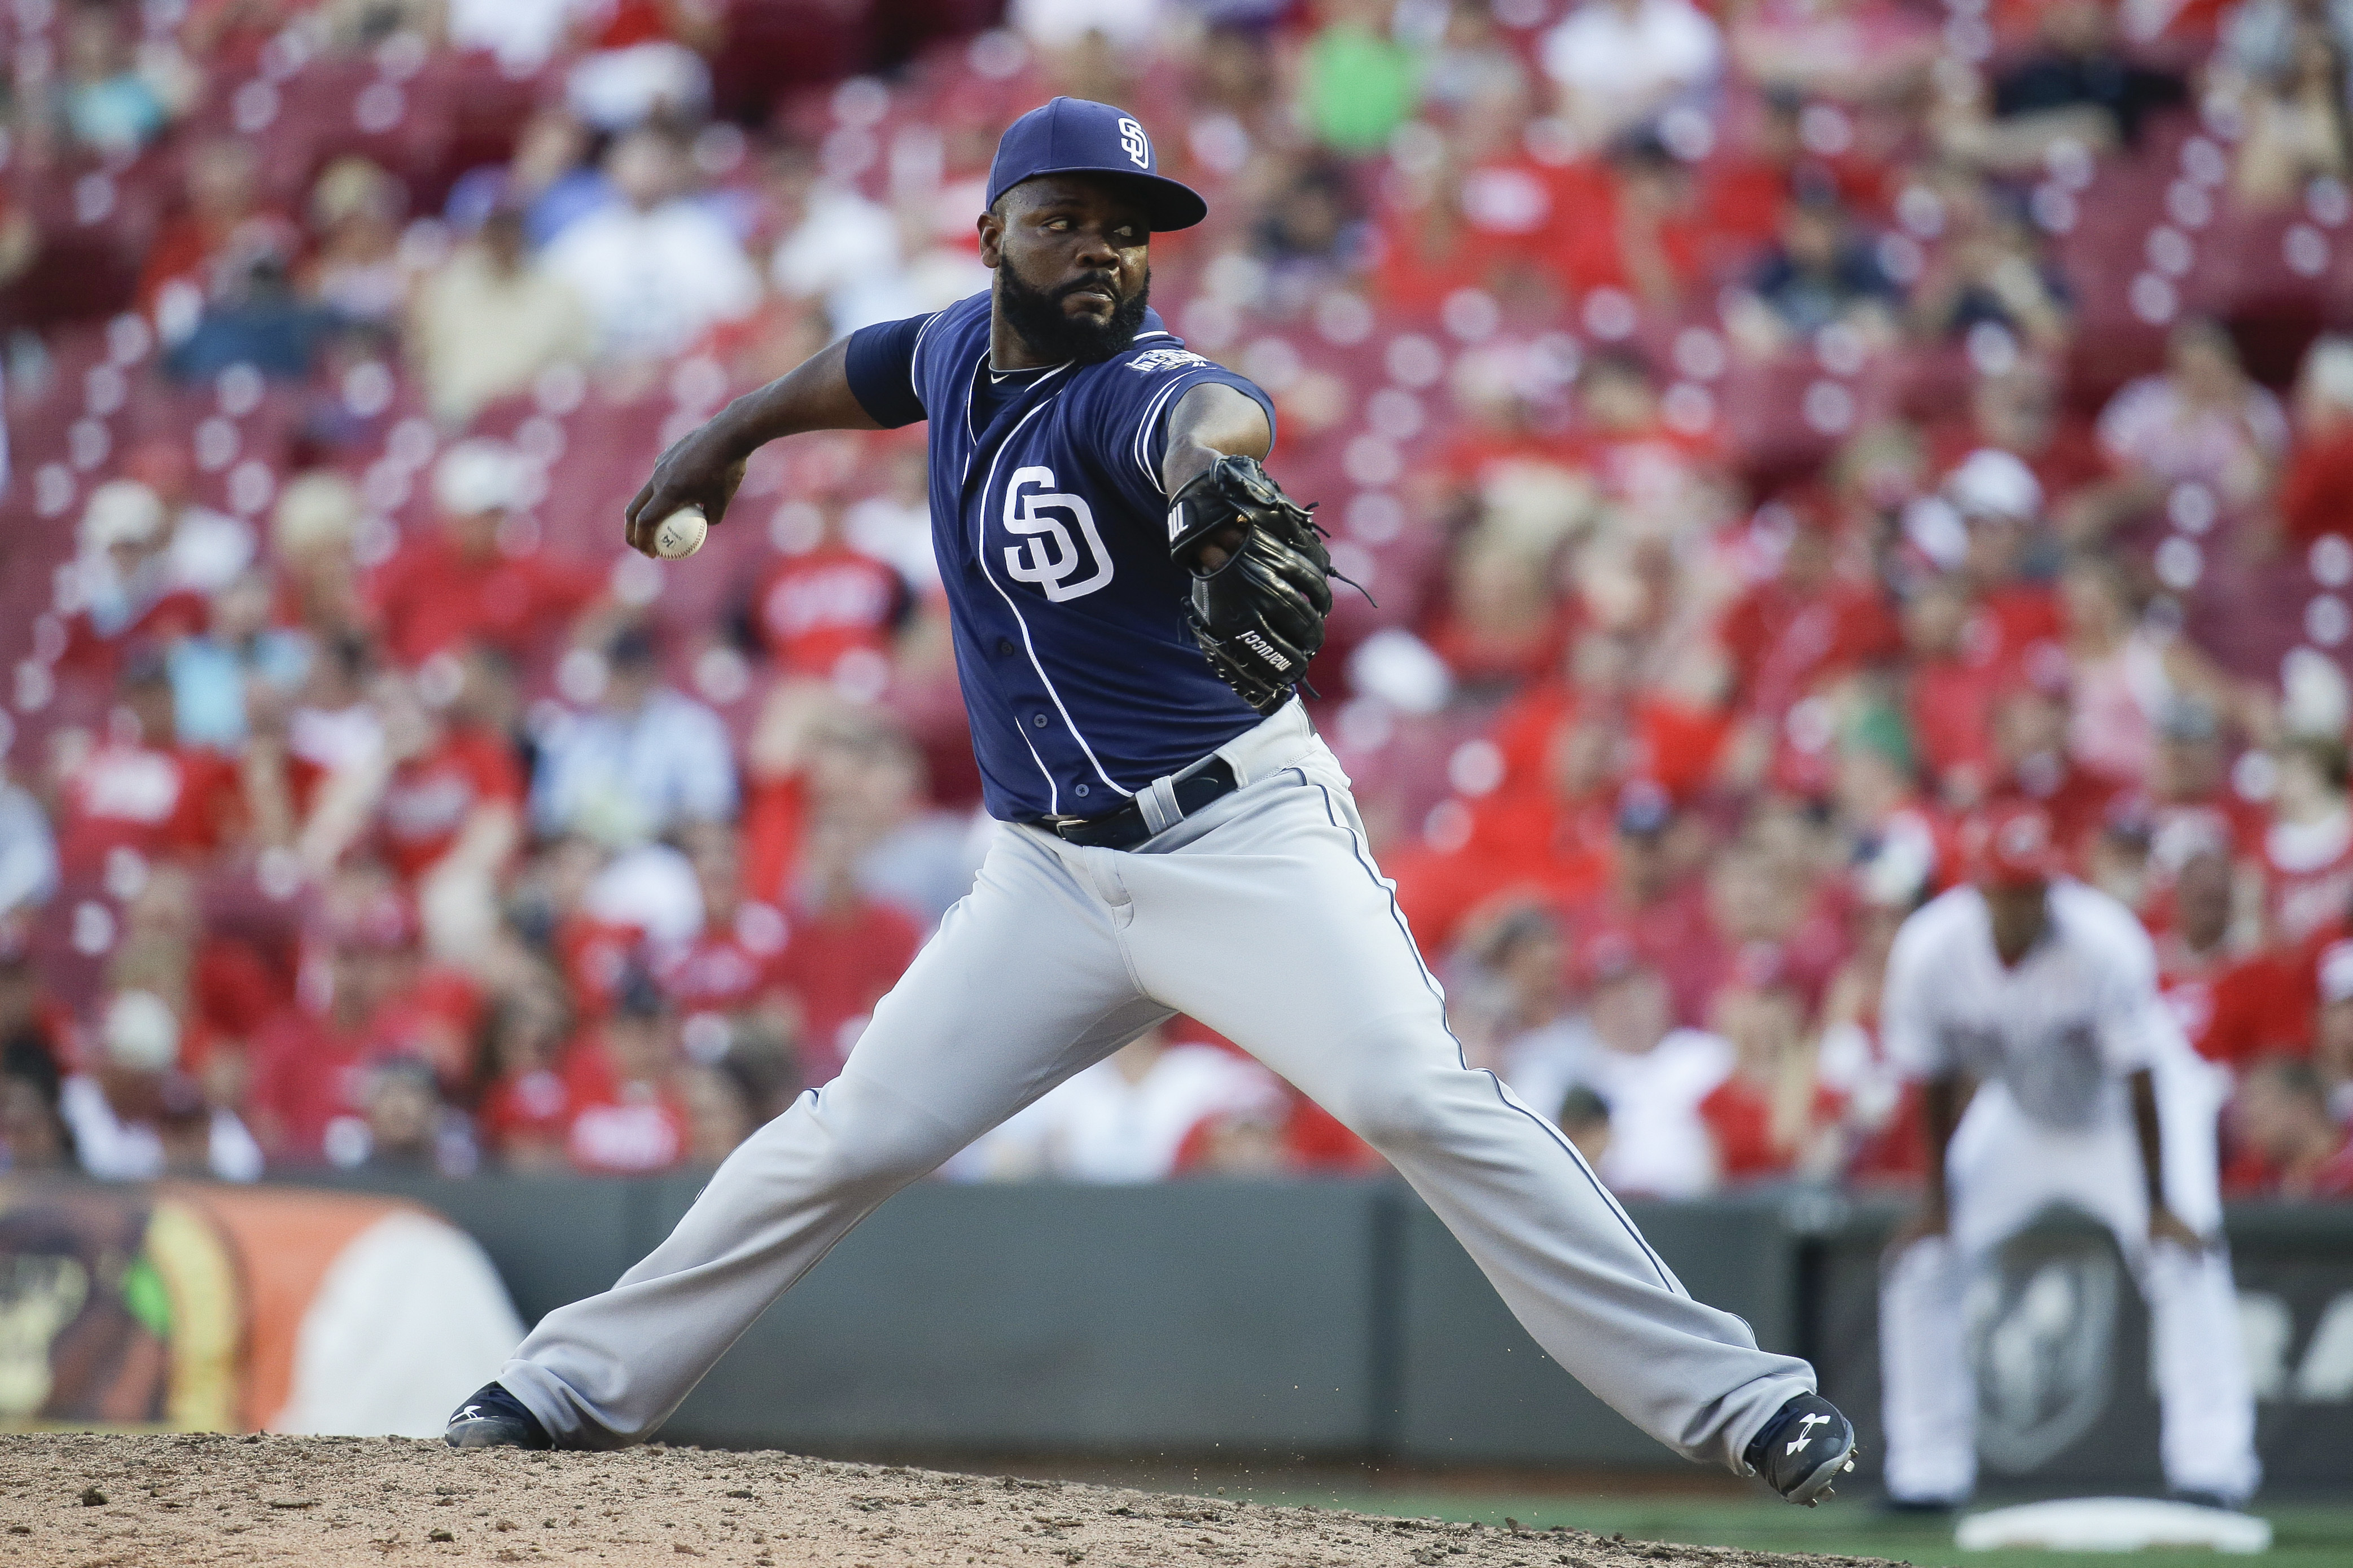 San Diego Padres relief pitcher Fernando Rodney throws in the ninth inning of a baseball game against the Cincinnati Reds, Saturday, June 25, 2016, in Cincinnati. (AP Photo/John Minchillo)